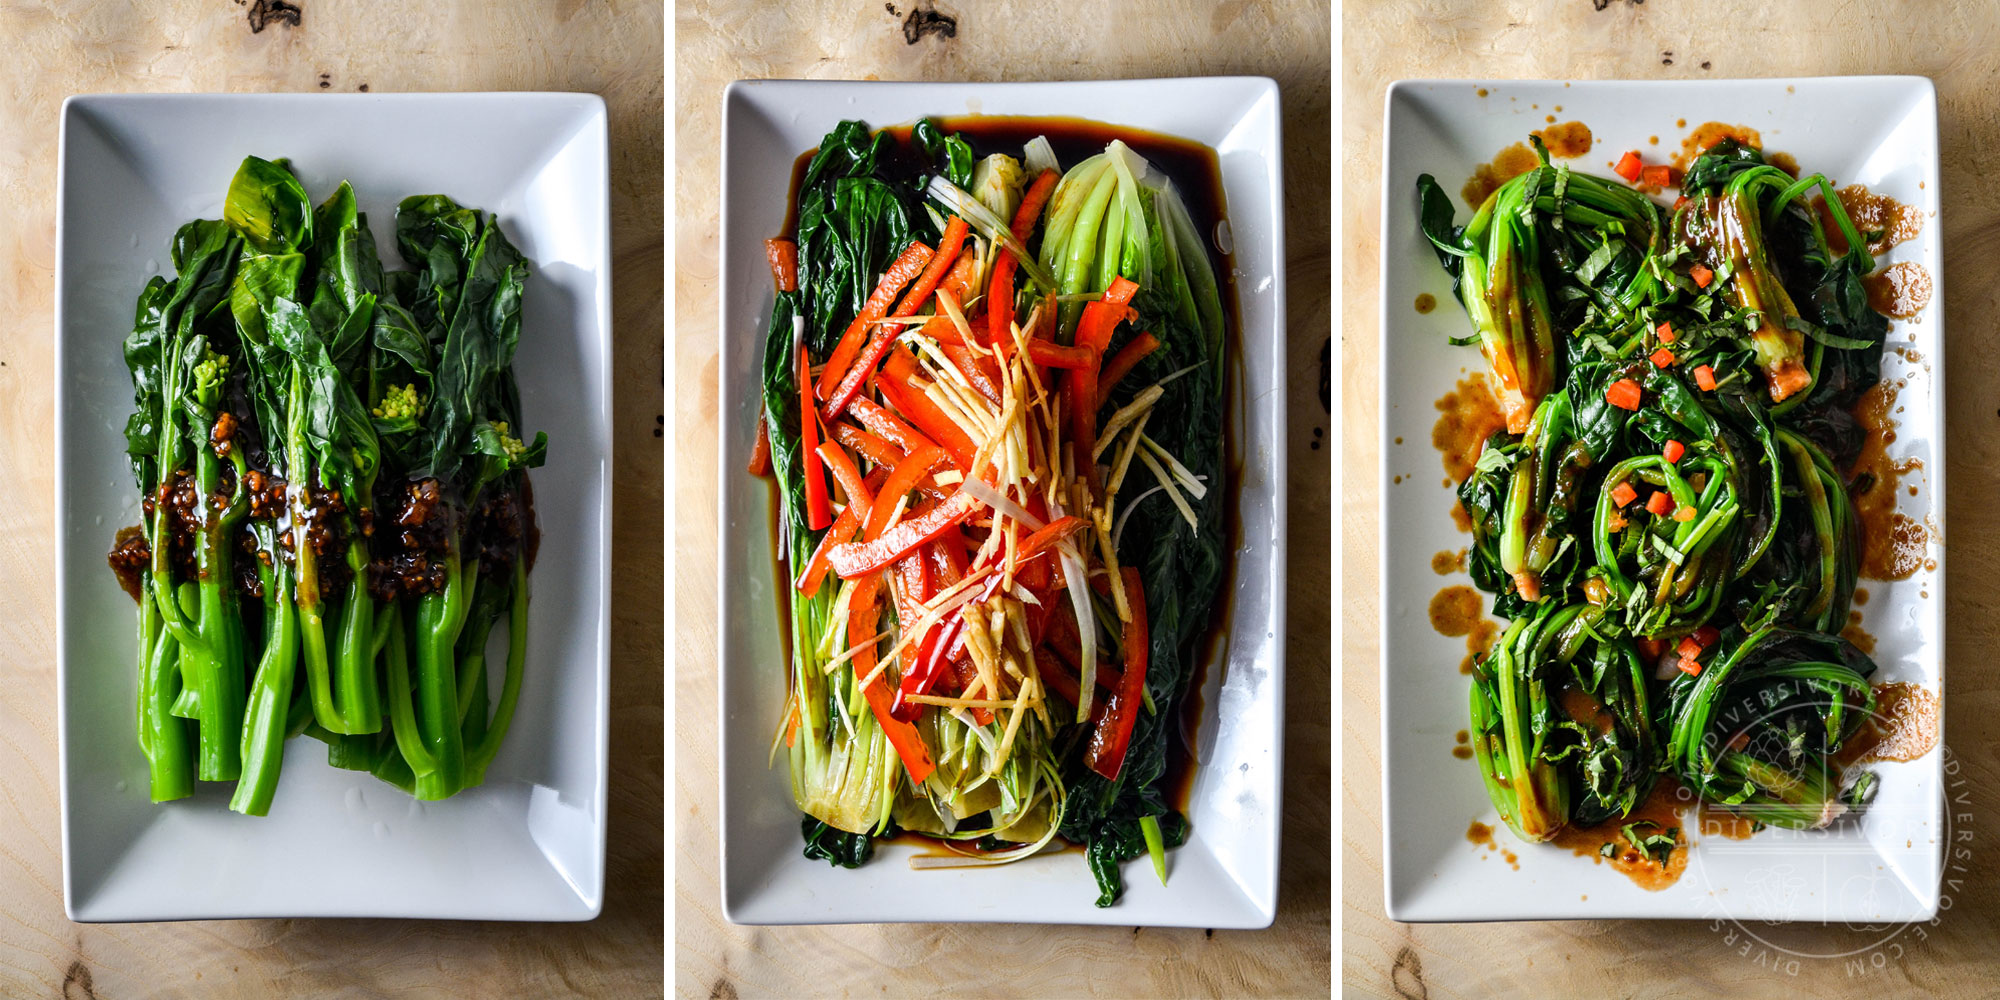 Triptych of three blanched Chinese greens served with different sauces - Diversivore.com